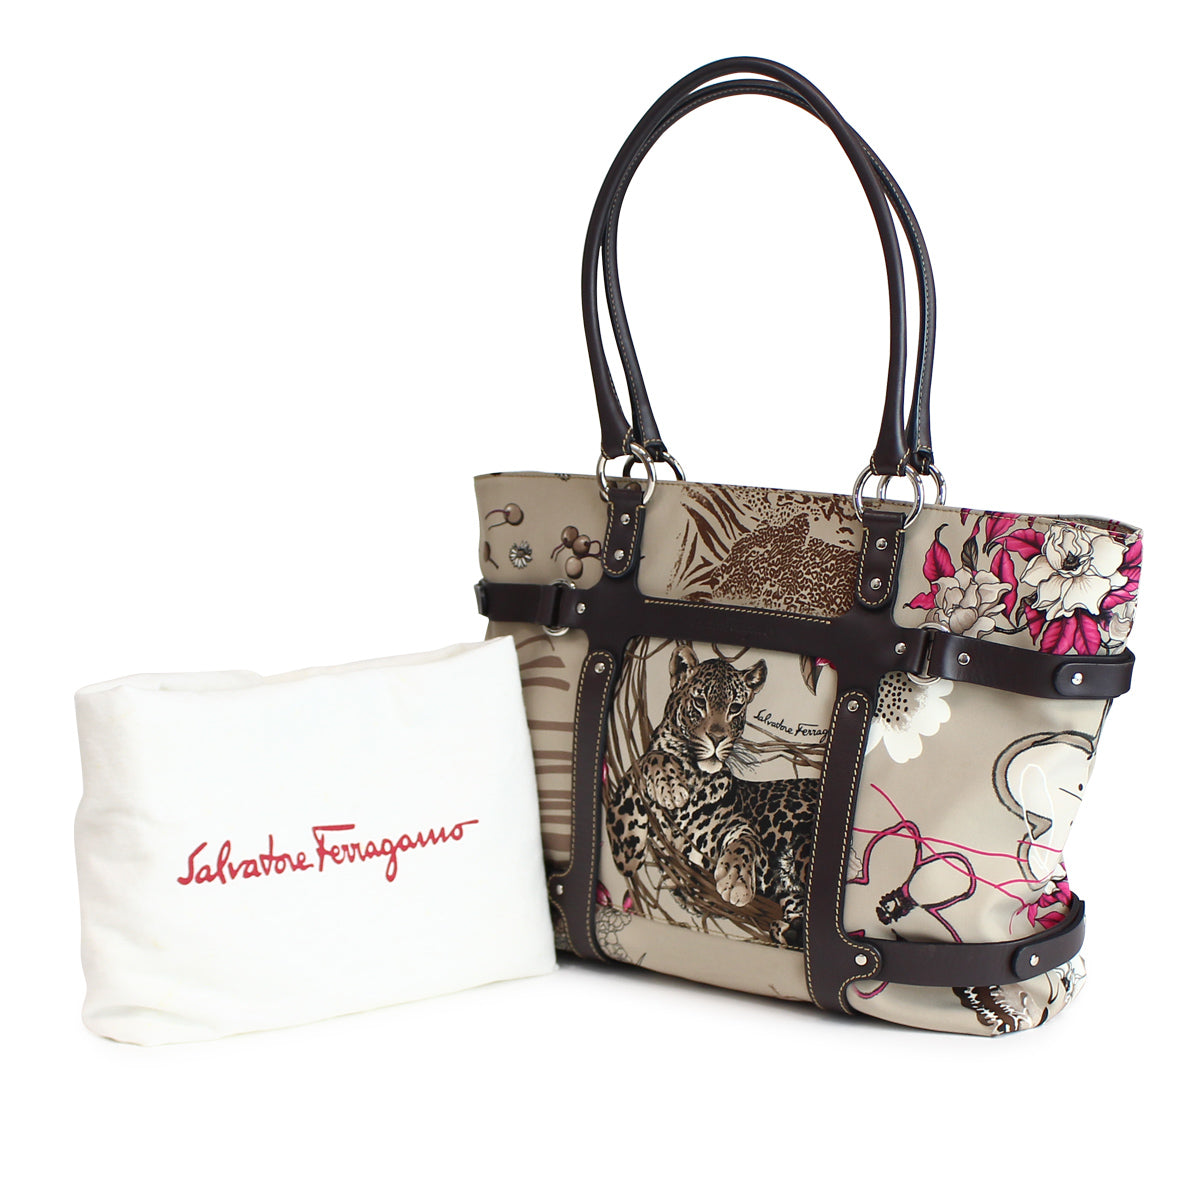 ad87fb9d84 SALVATORE FERRAGAMO AU-21 Animal Print Tote Bag – CHUCO STYLE